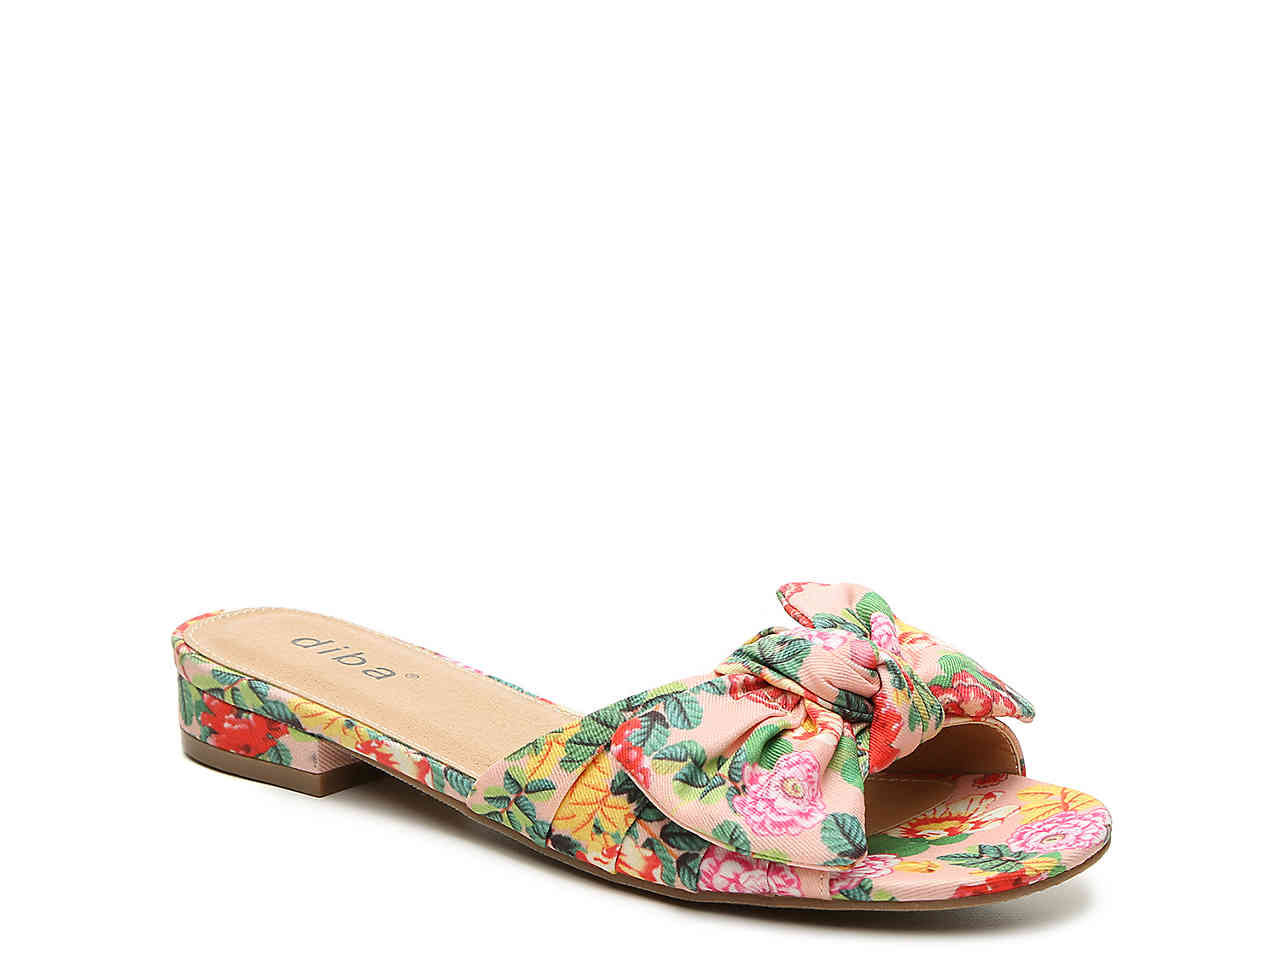 Shop these sandals by clicking on the image or  HERE.